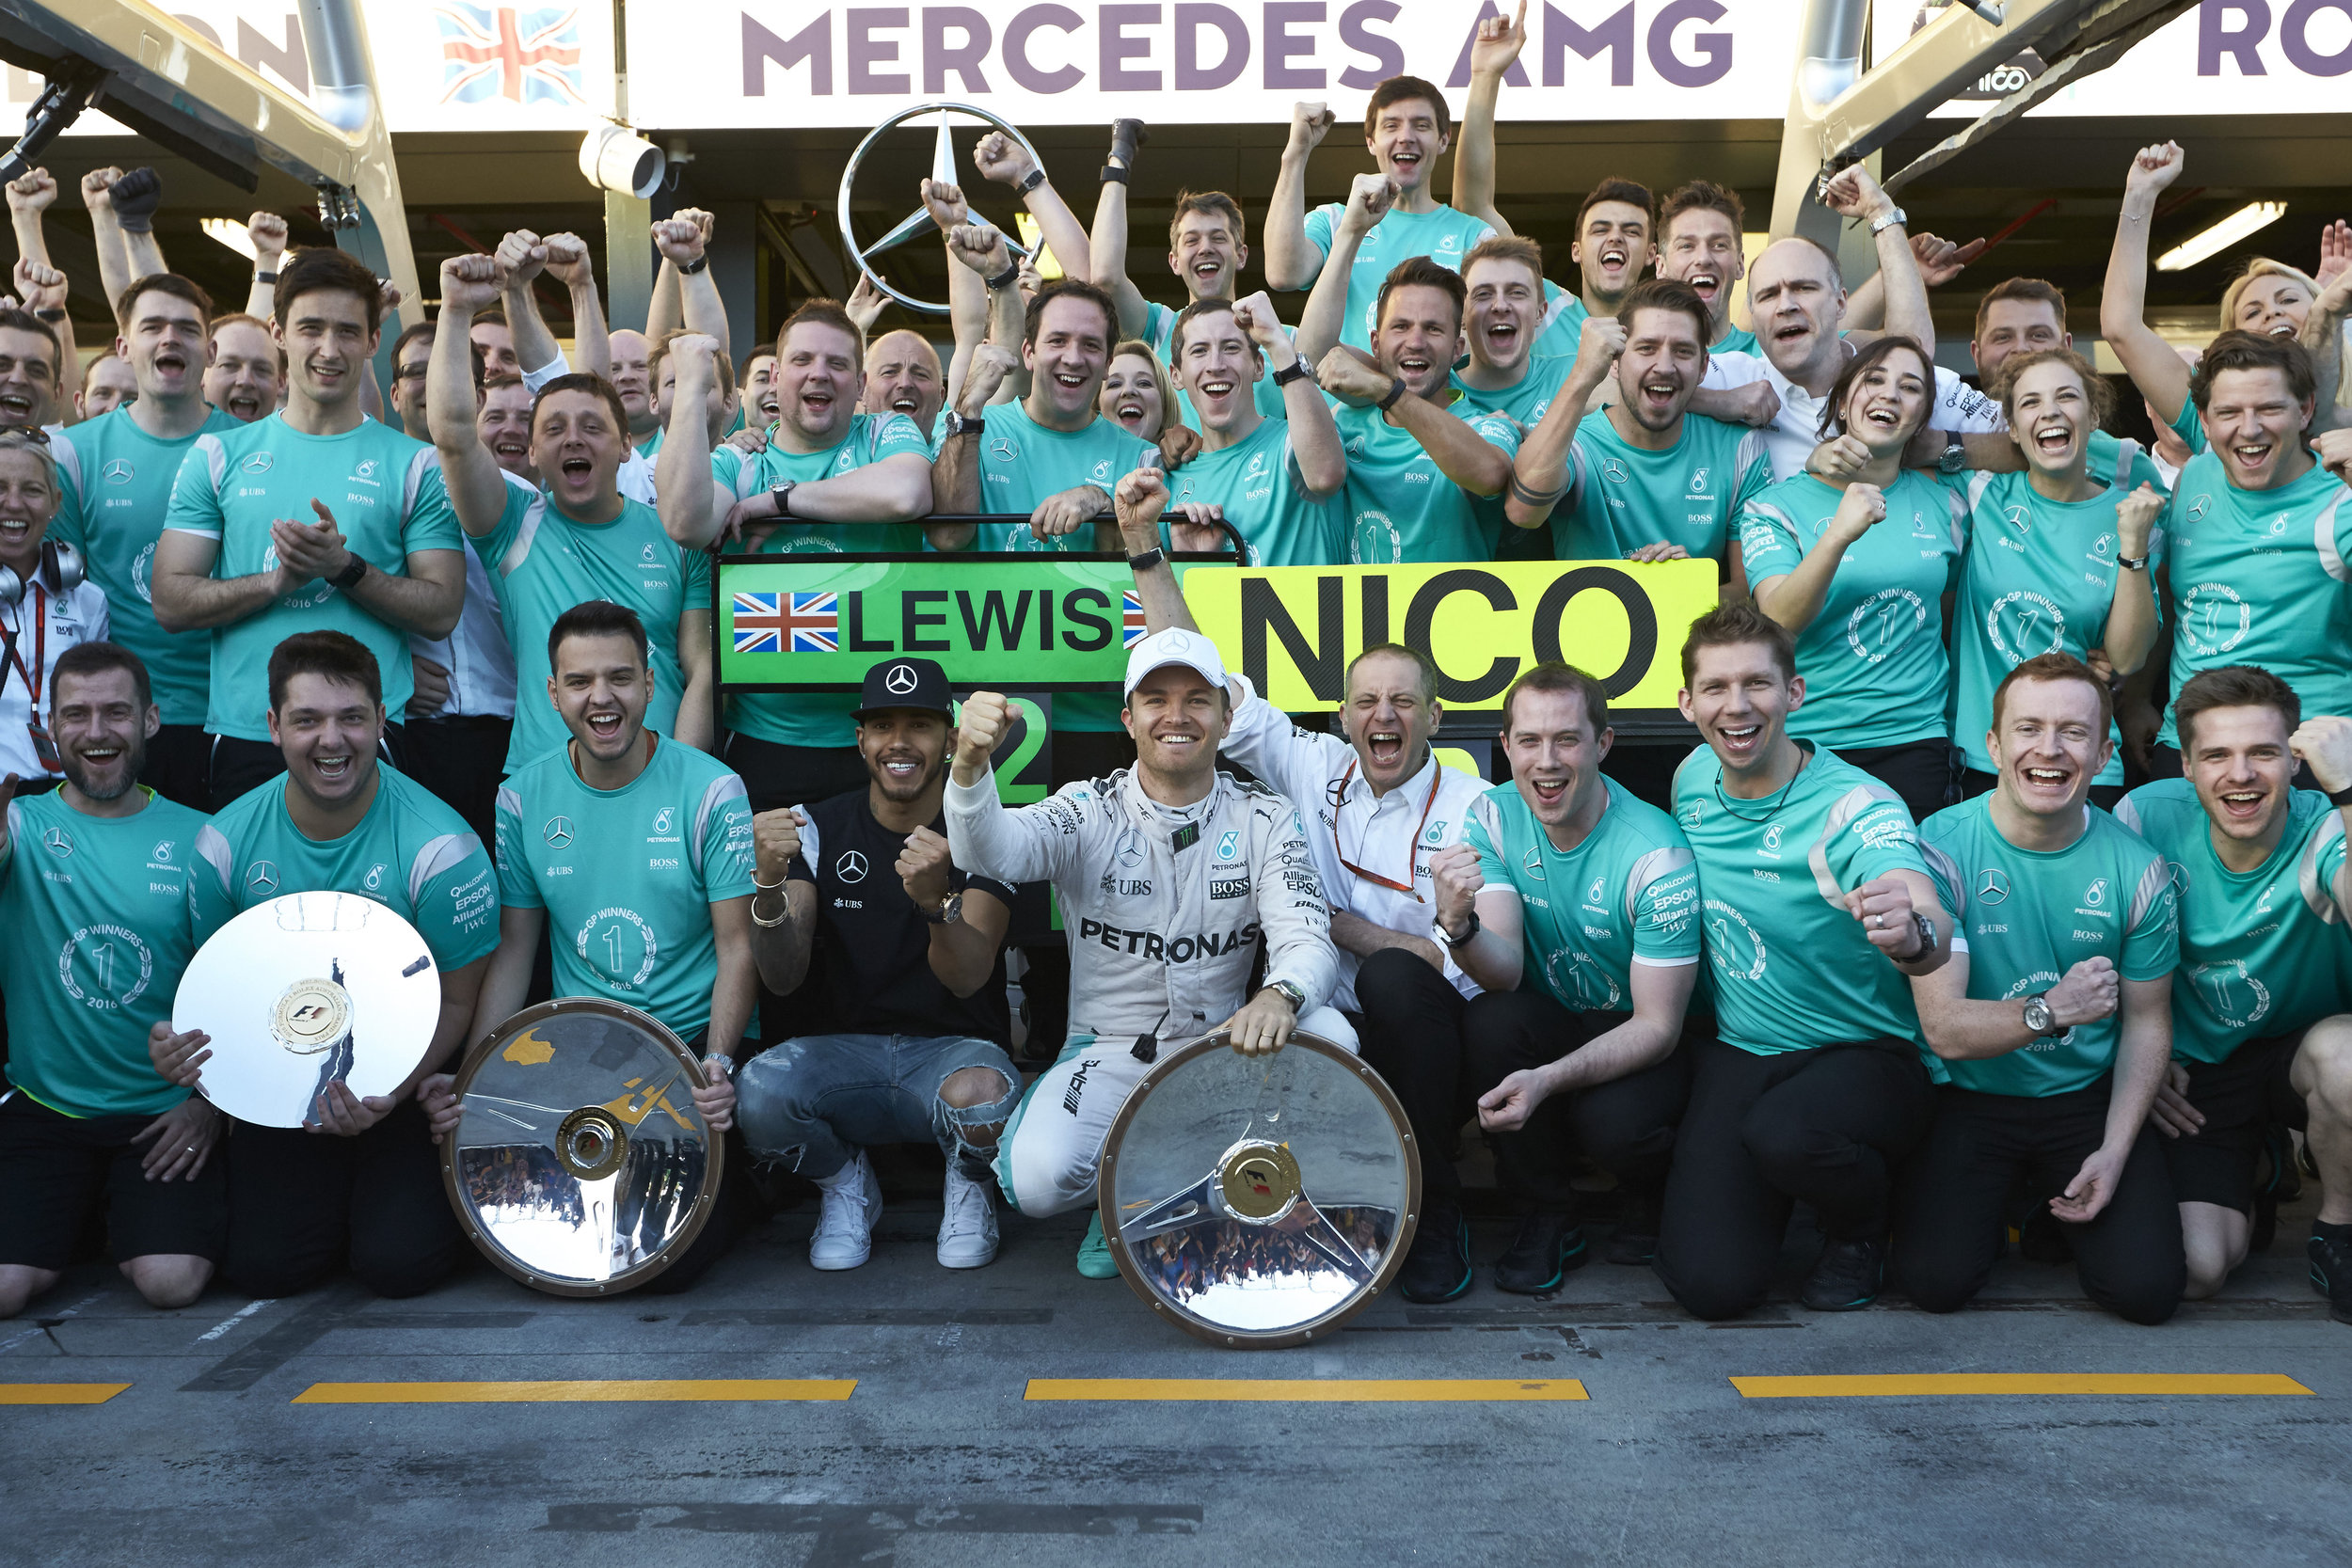 Nico wins, Hamilton second at Albert Park (Pic: Mercedes)